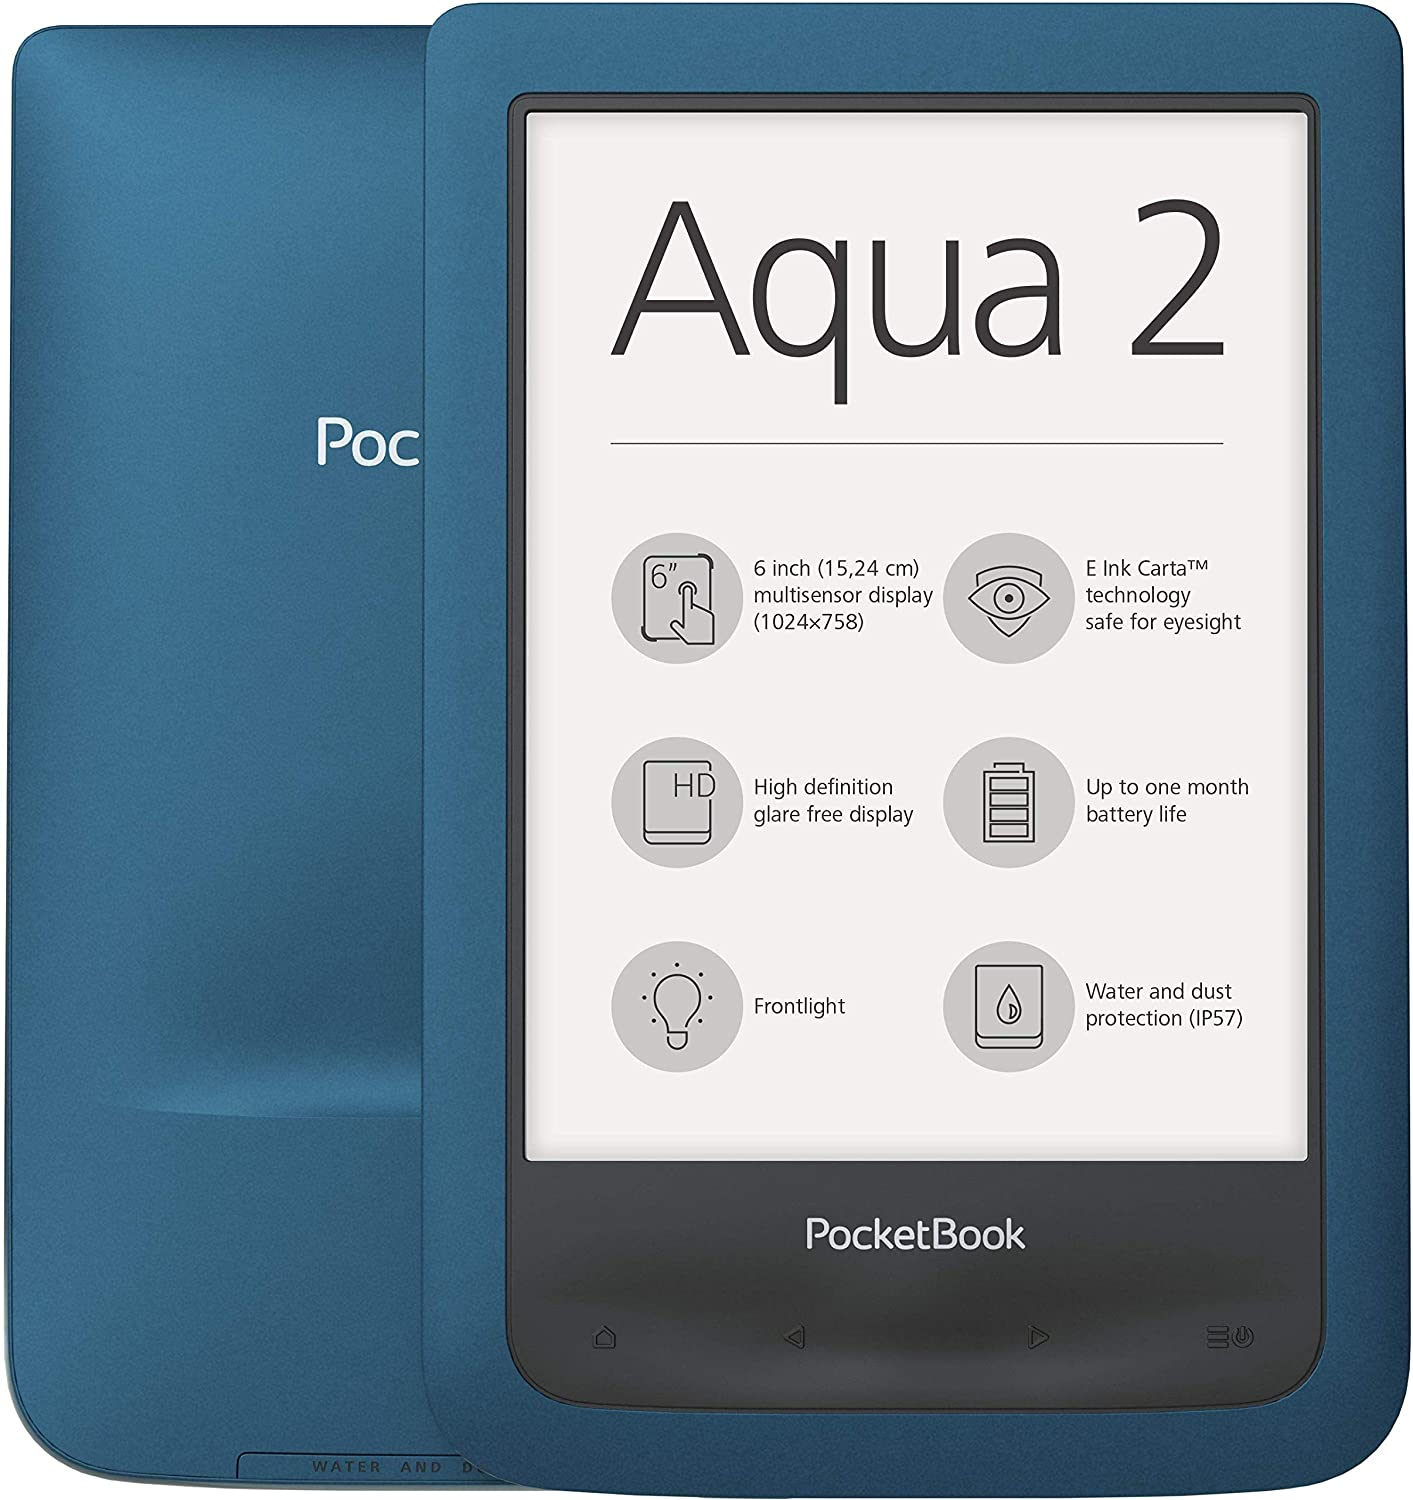 Pocketbook AQUA 2 lectore de e-book Pantalla táctil 8 GB Wifi ...